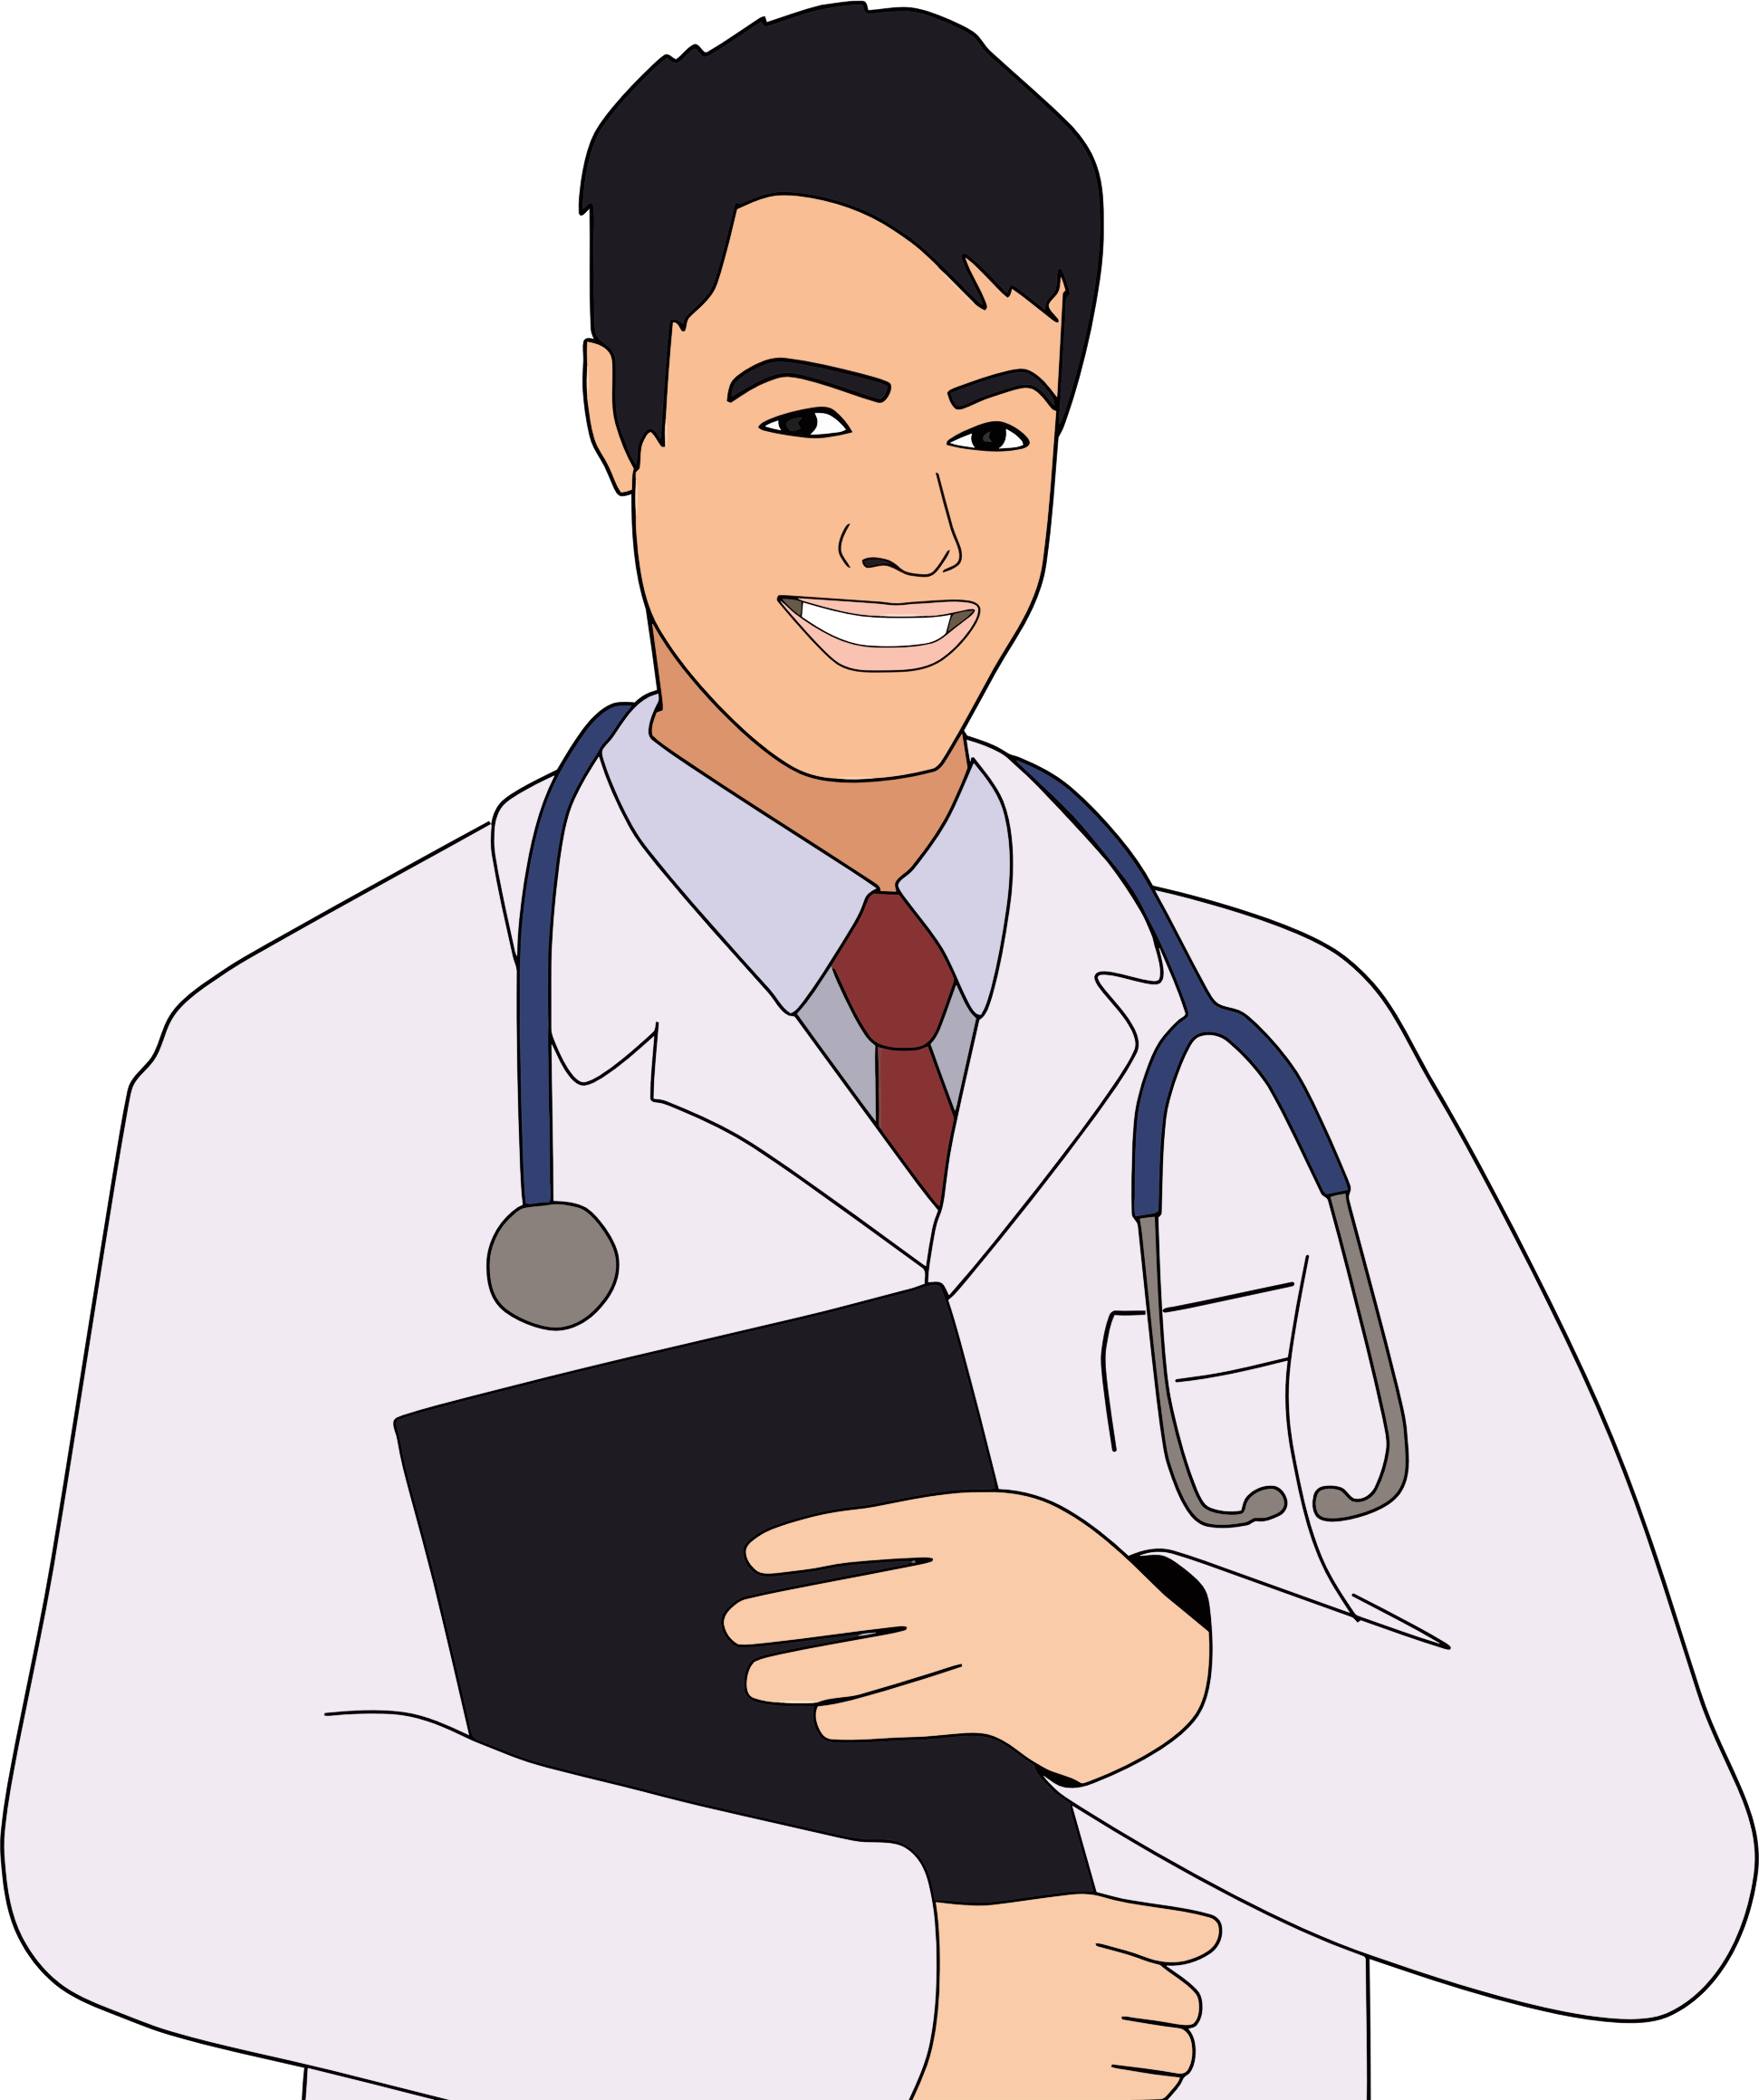 Doctor clipart png. Collection of with